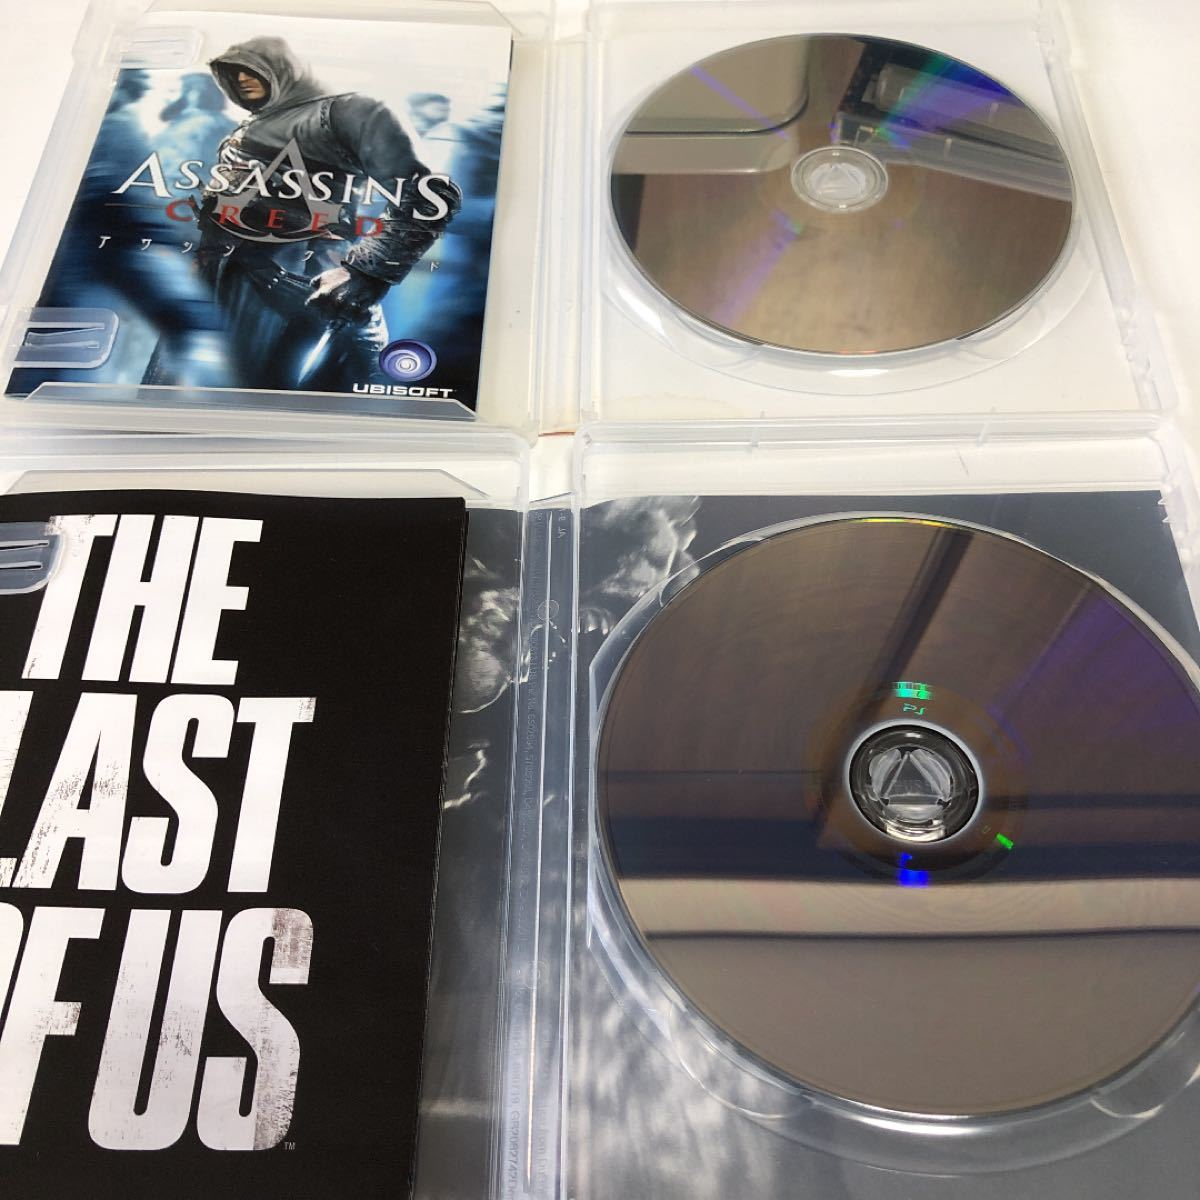 ■The Last of Us  アサシンクリード PS3ソフト まとめ売り